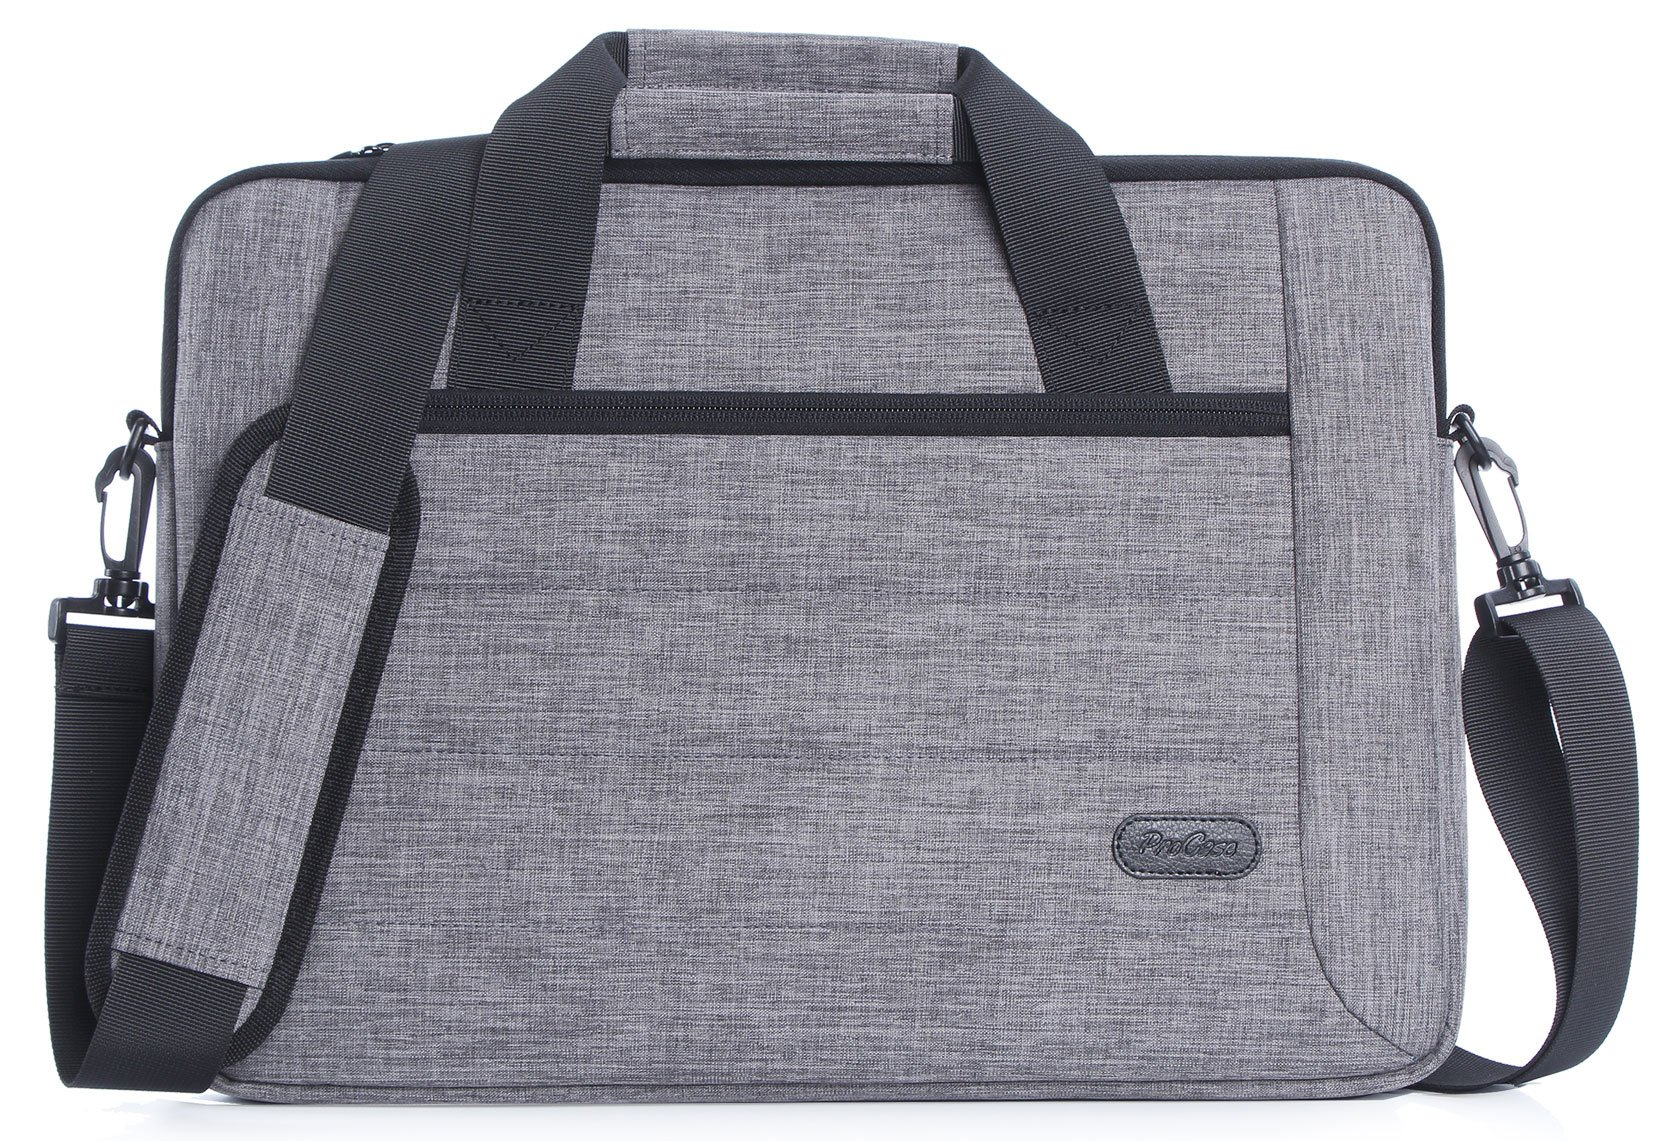 ProCase 14 - 15.6 Inch Briefcase Messenger Bag with Shoulder Strap and Handle for 14 15 Inch Laptop Ultrabook MacBook Chromebook Notebook Computer Acer Asus Dell HP Lenovo Samsung Sony Toshiba -Grey